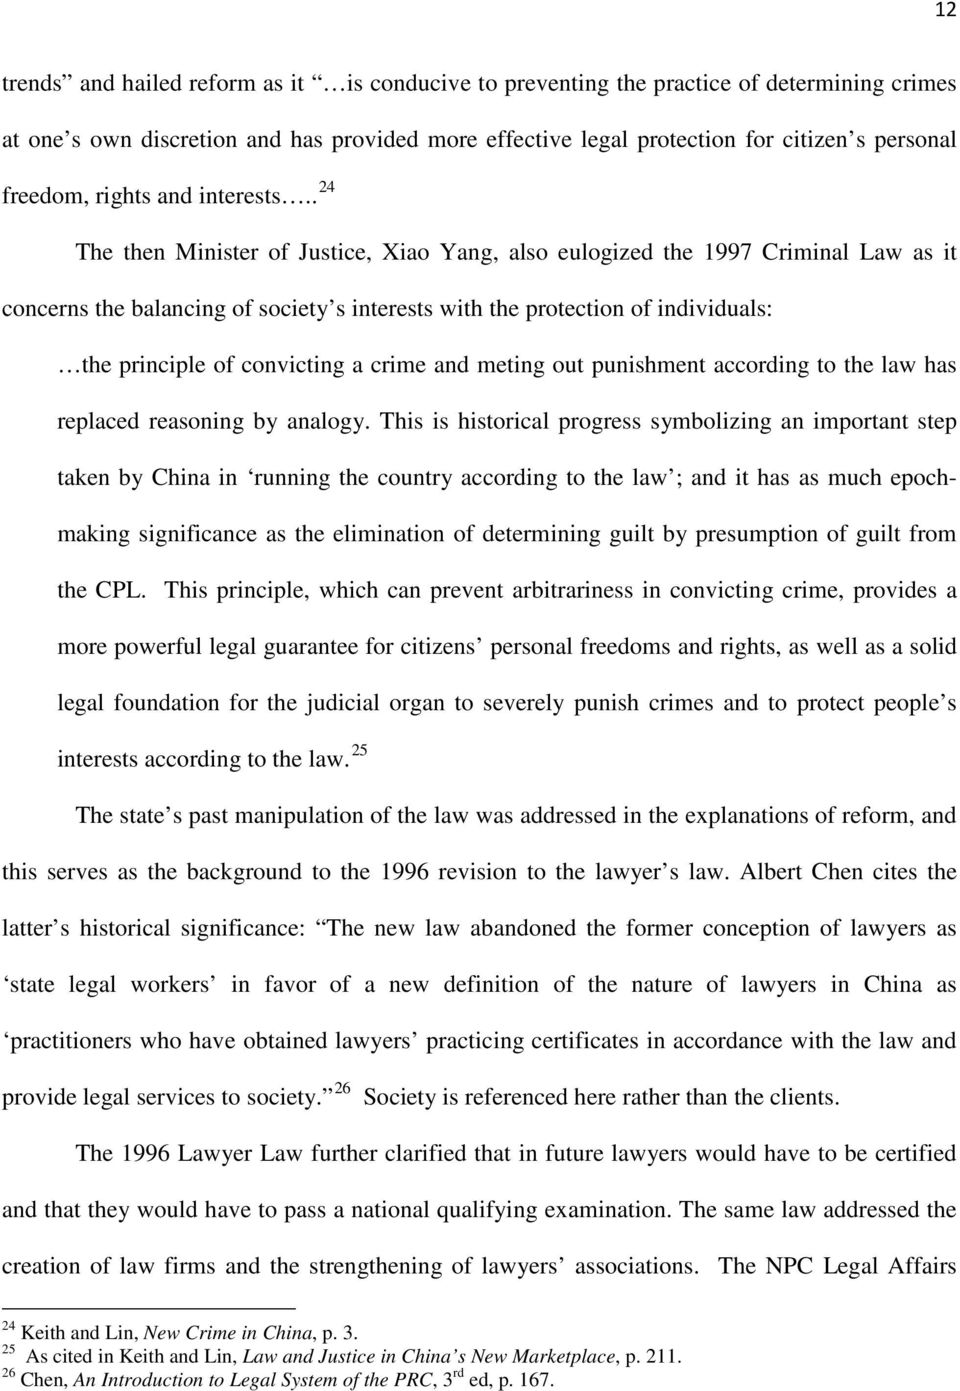 . 24 The then Minister of Justice, Xiao Yang, also eulogized the 1997 Criminal Law as it concerns the balancing of society s interests with the protection of individuals: the principle of convicting